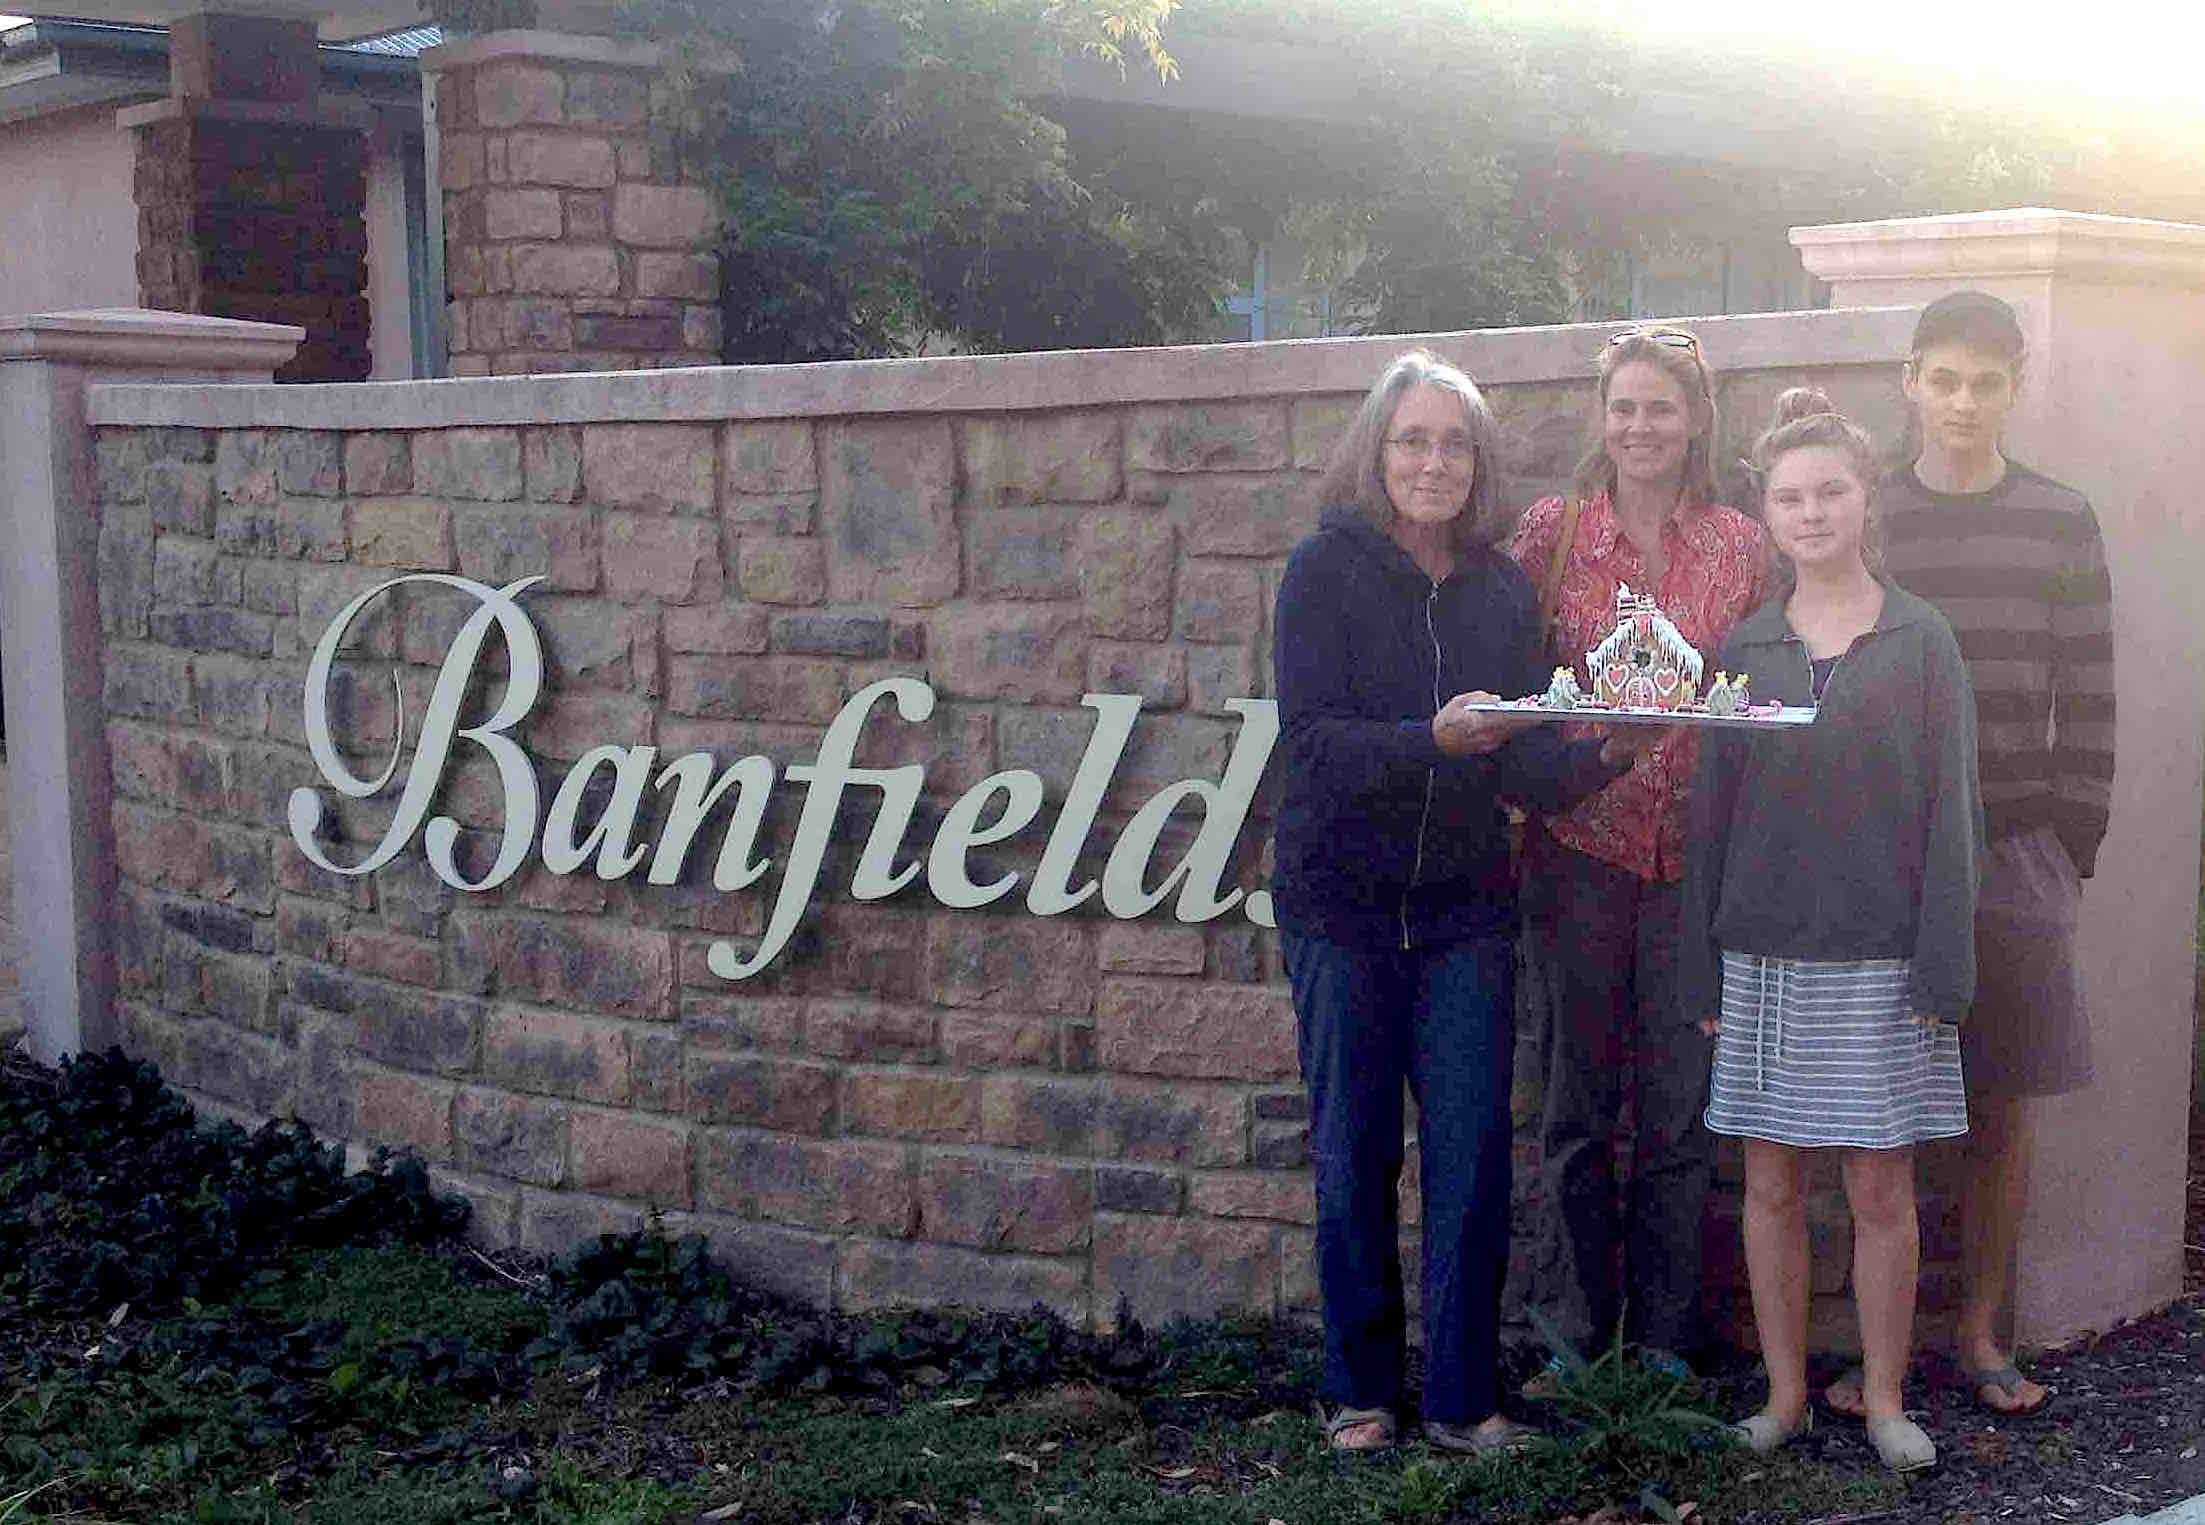 134. Anne giving her gingerbread house to the Banfield Aged Care Center, Phillip Island, Australia